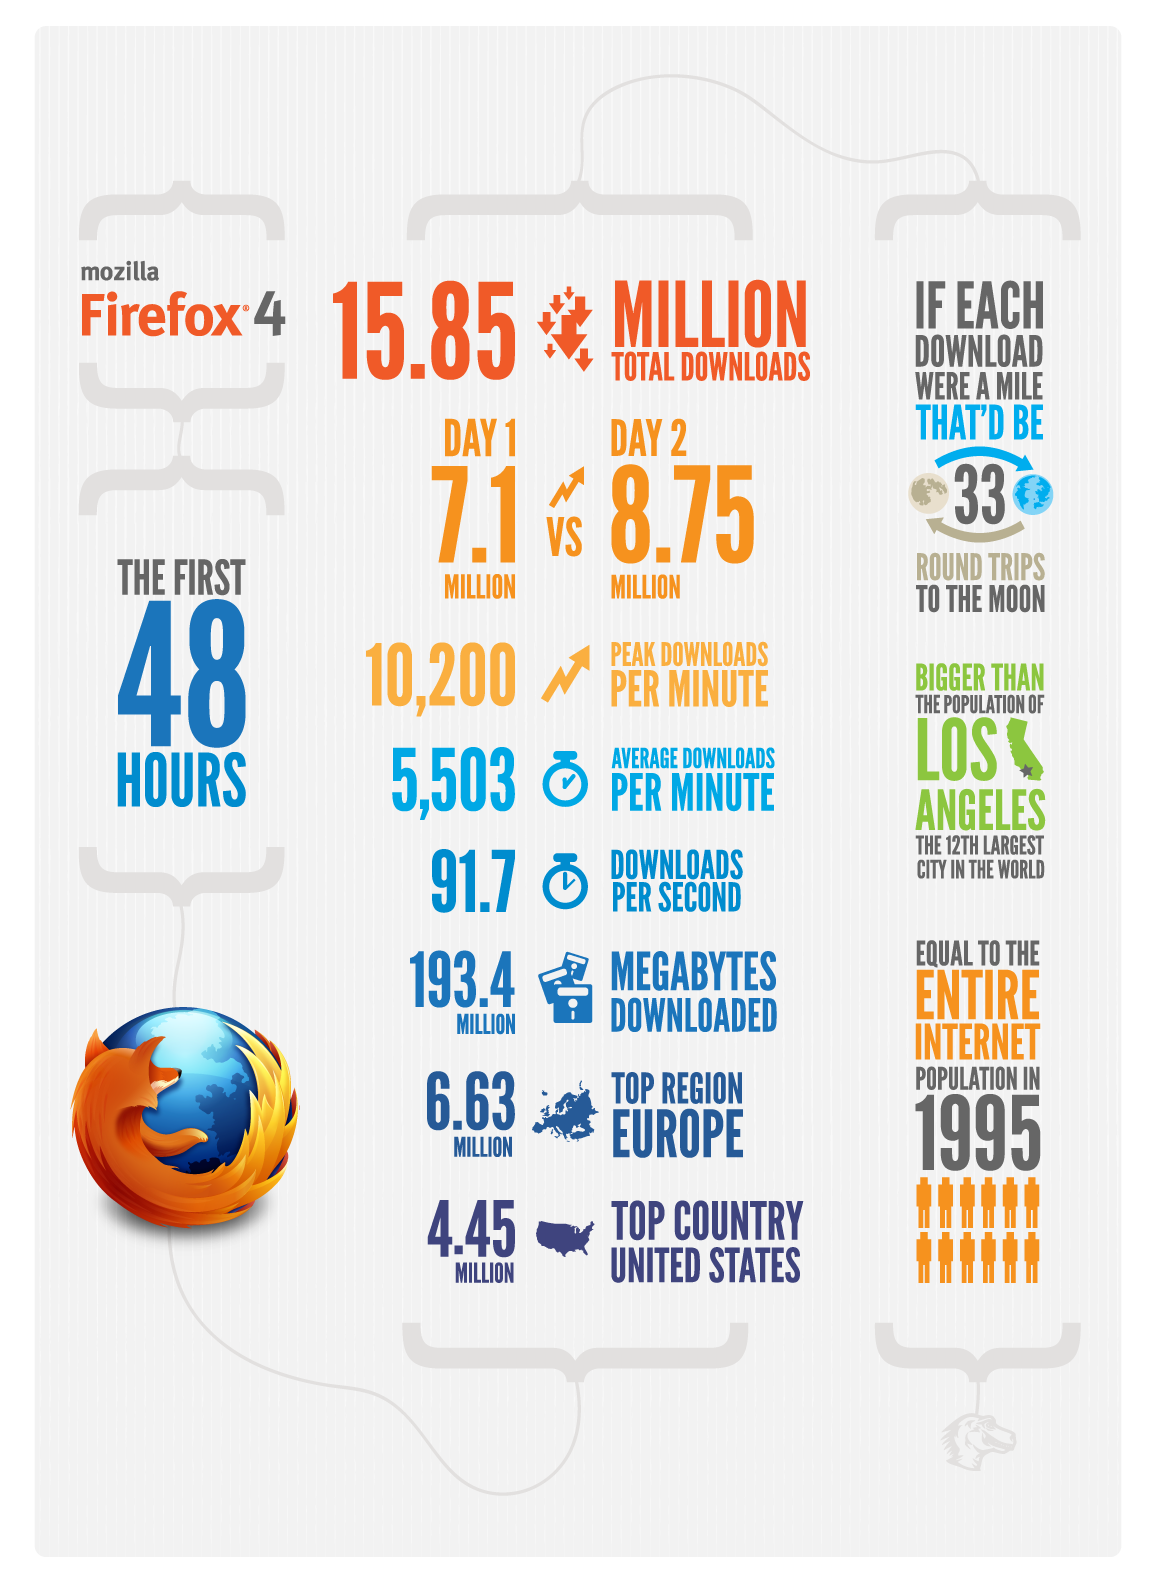 http://blog.mozilla.com/files/2011/03/ff4-infogrpahic-48hours.png